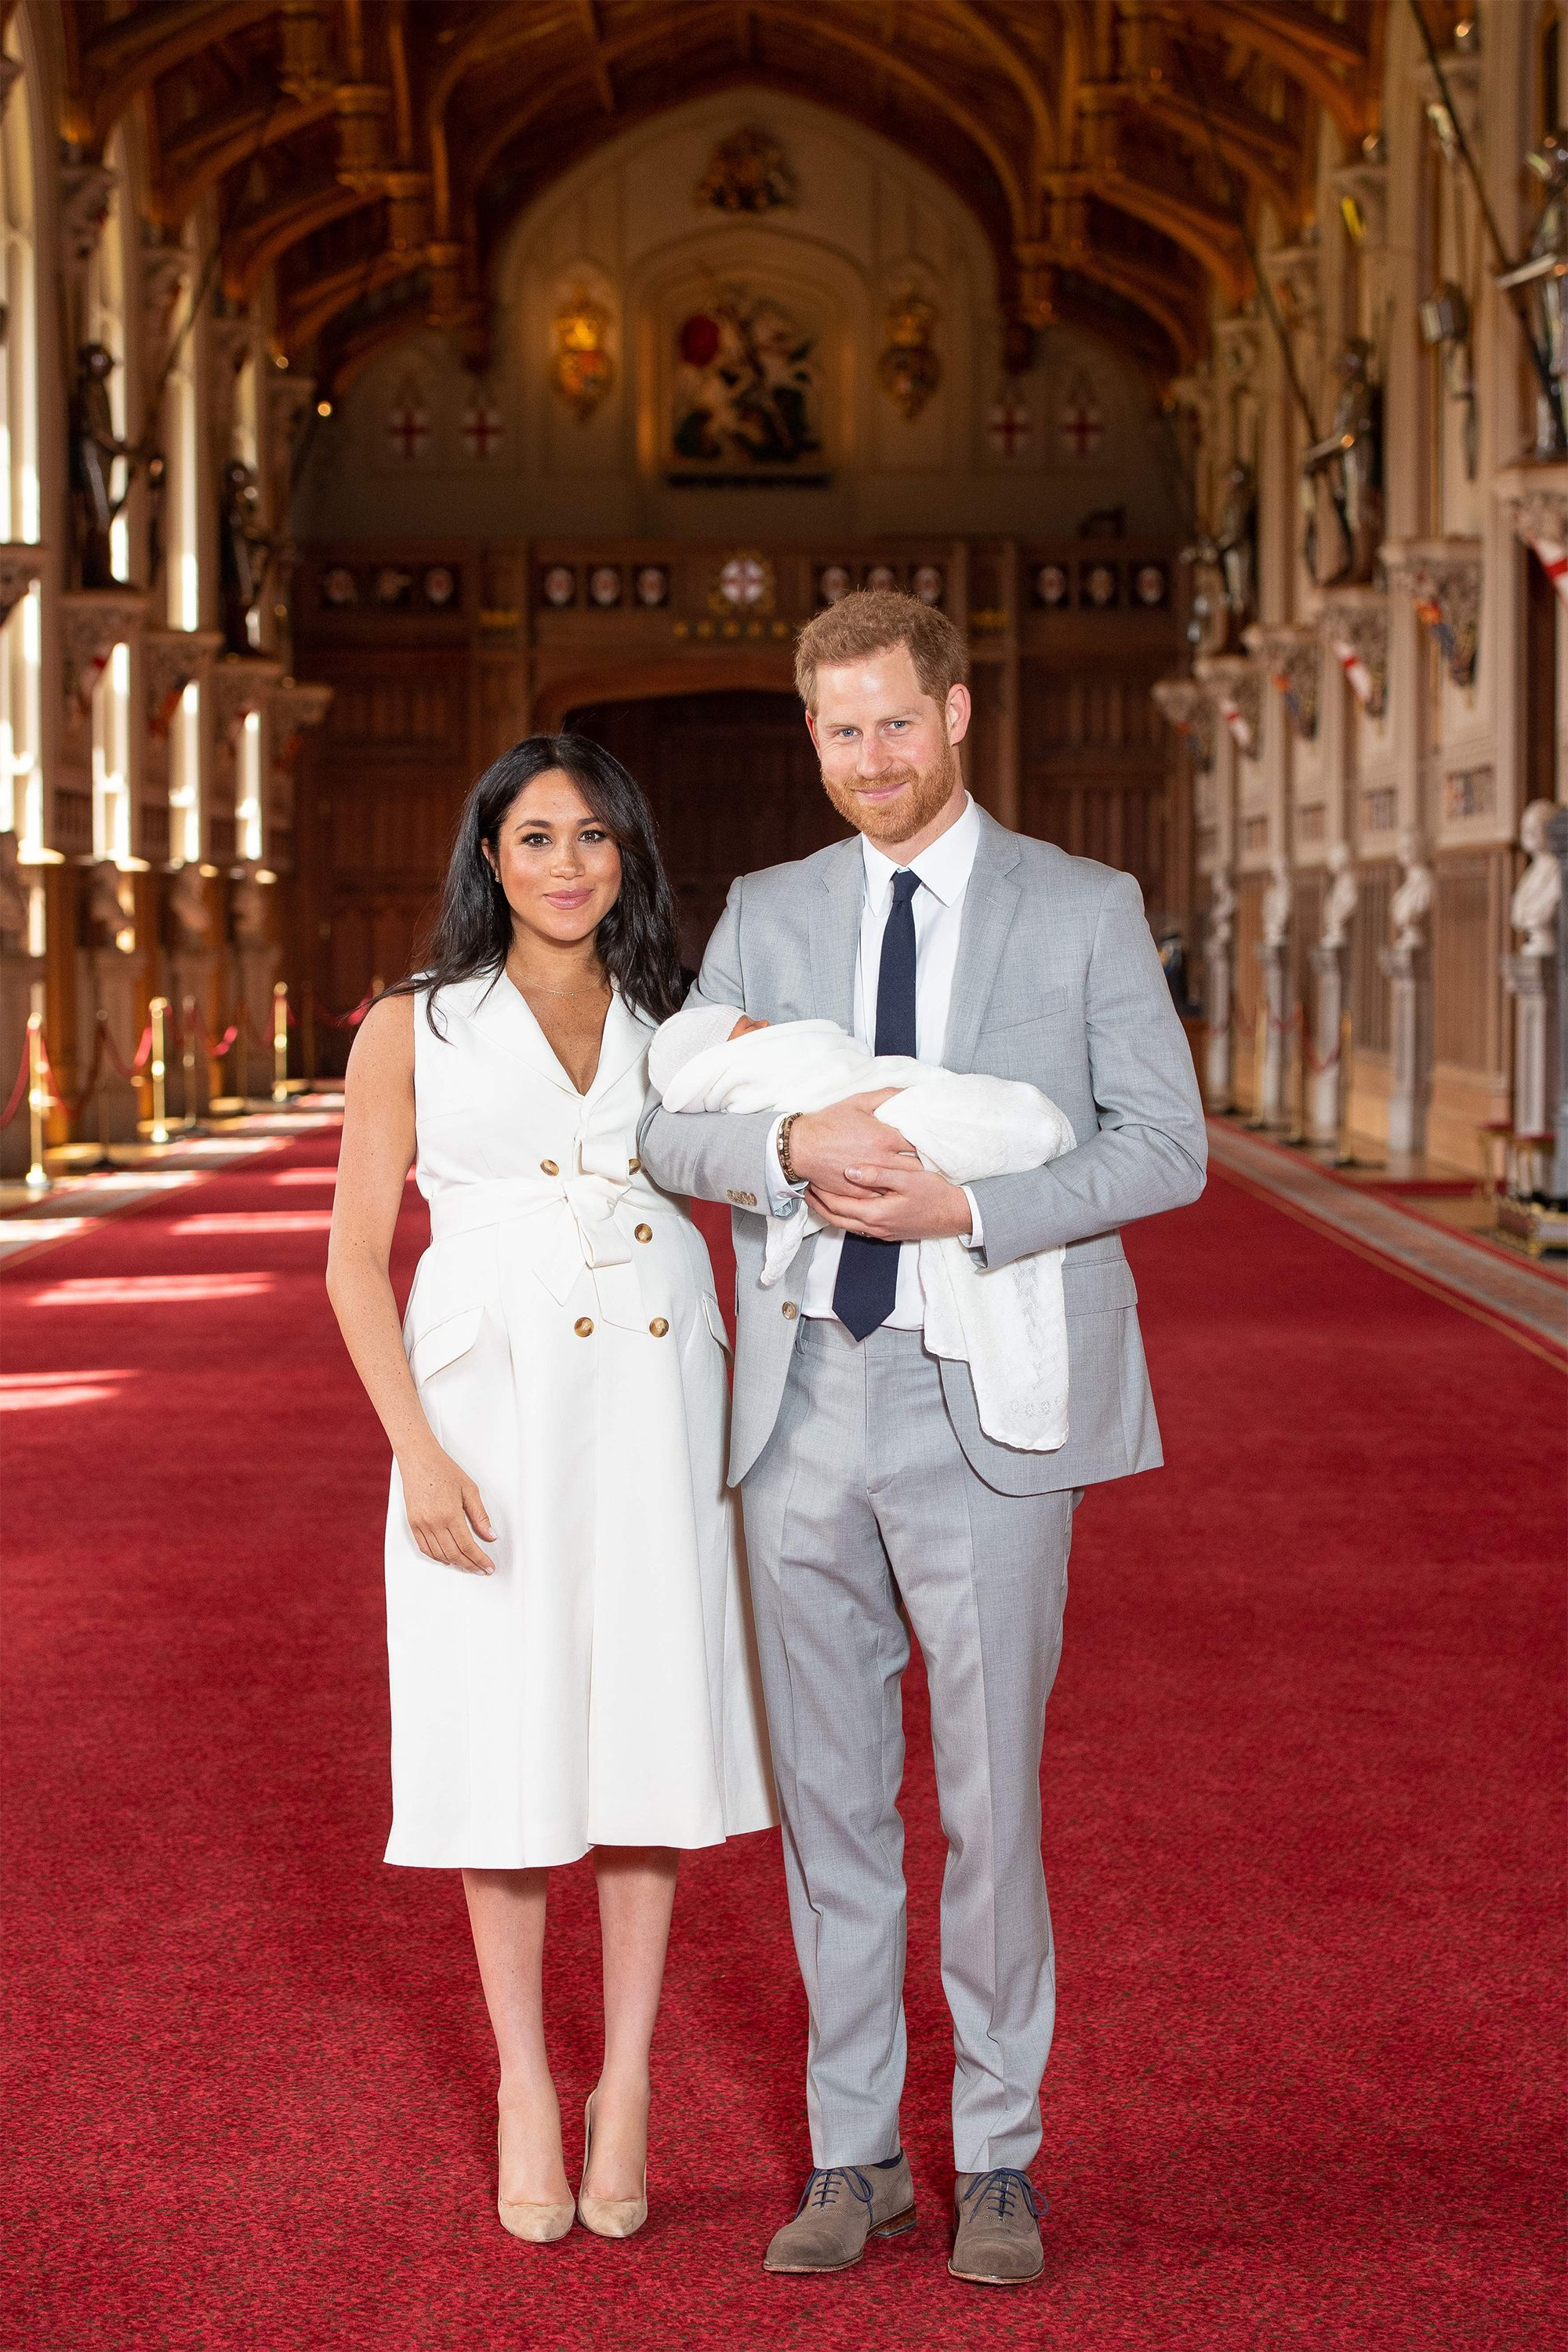 Pic of baby sussex